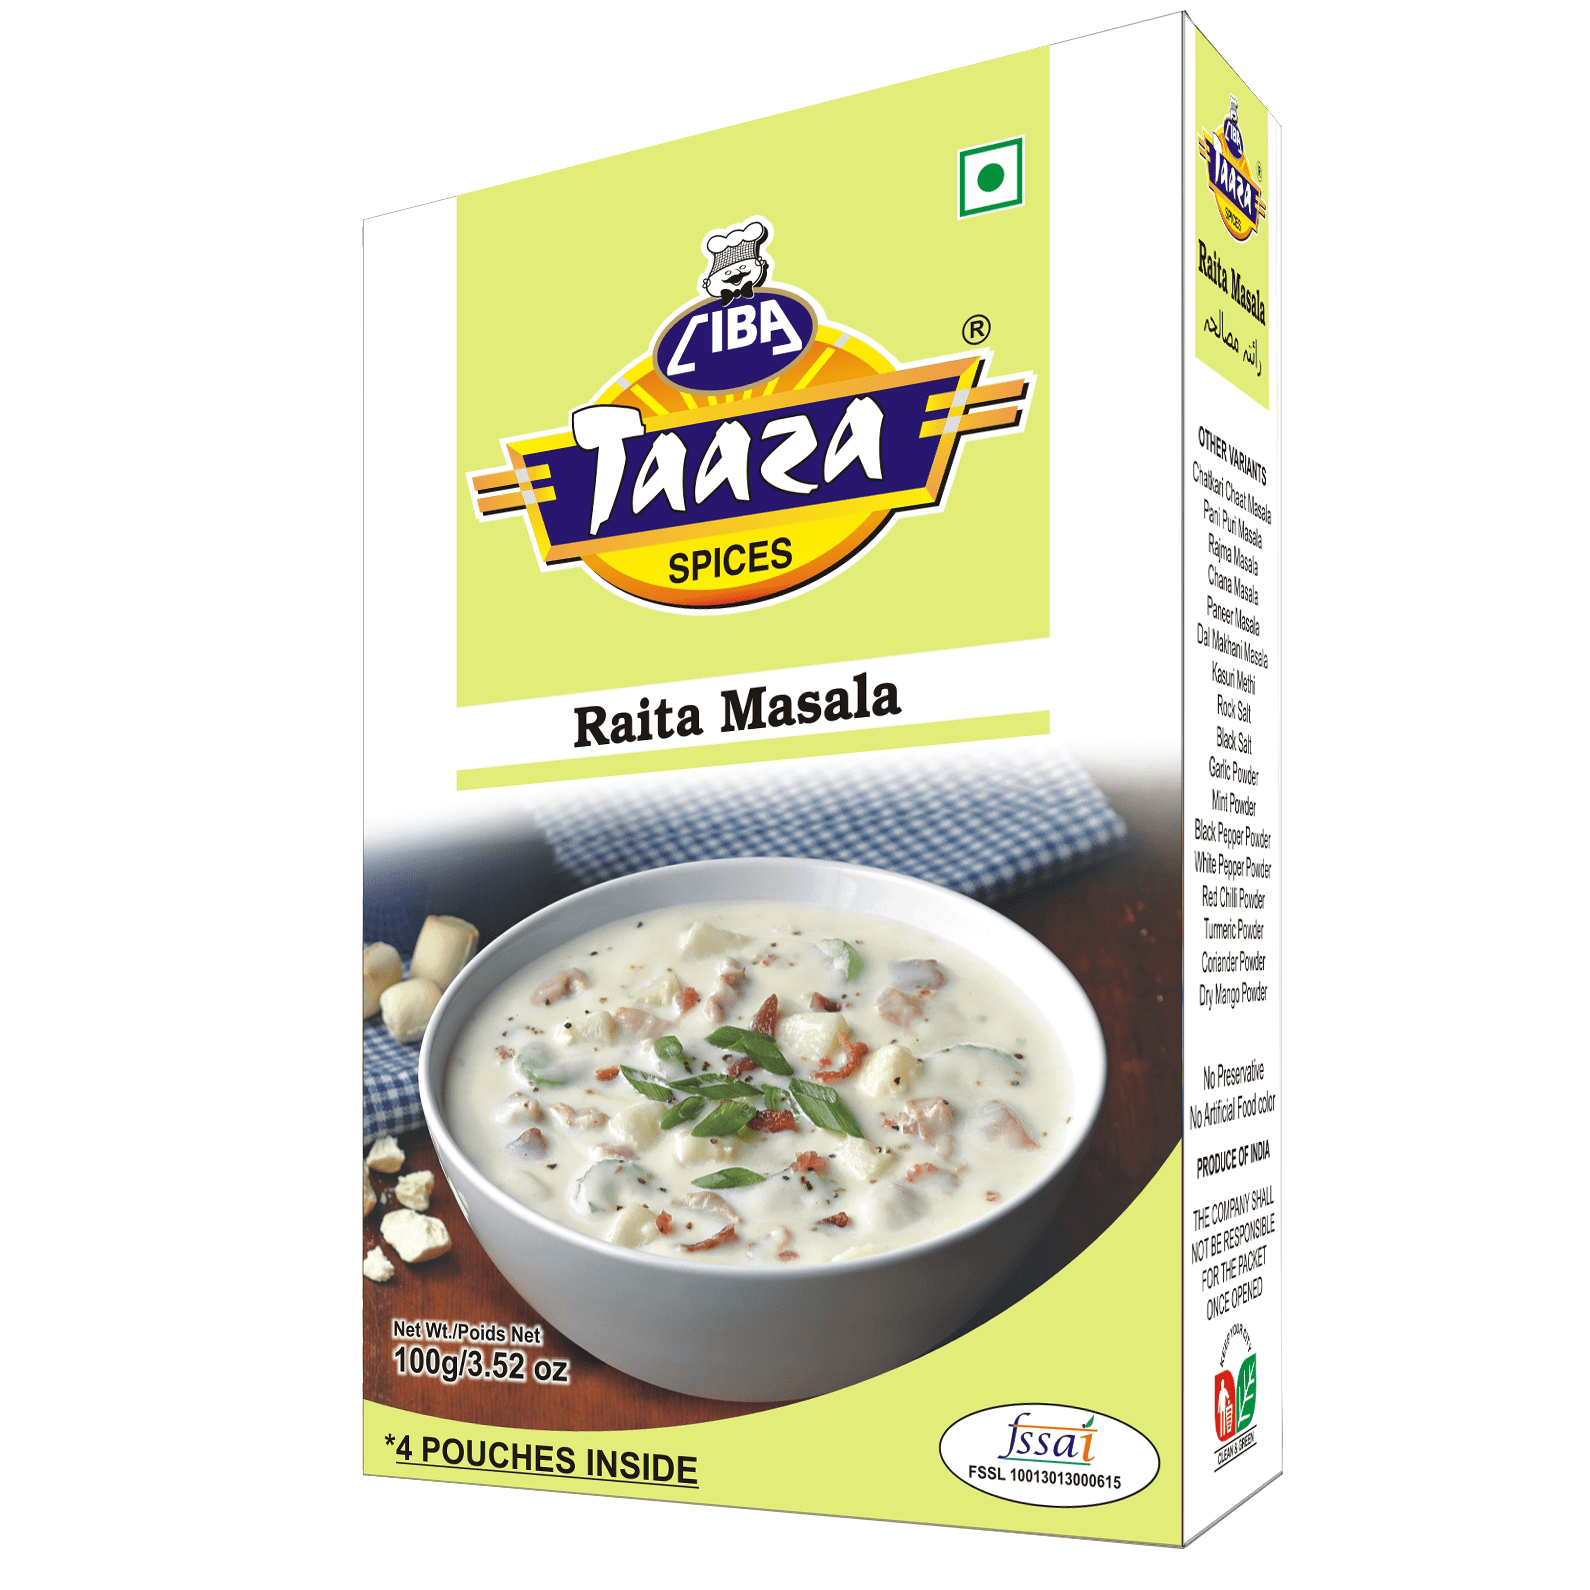 Raita Masala Powder By Ciba Taaza Spices, 100g